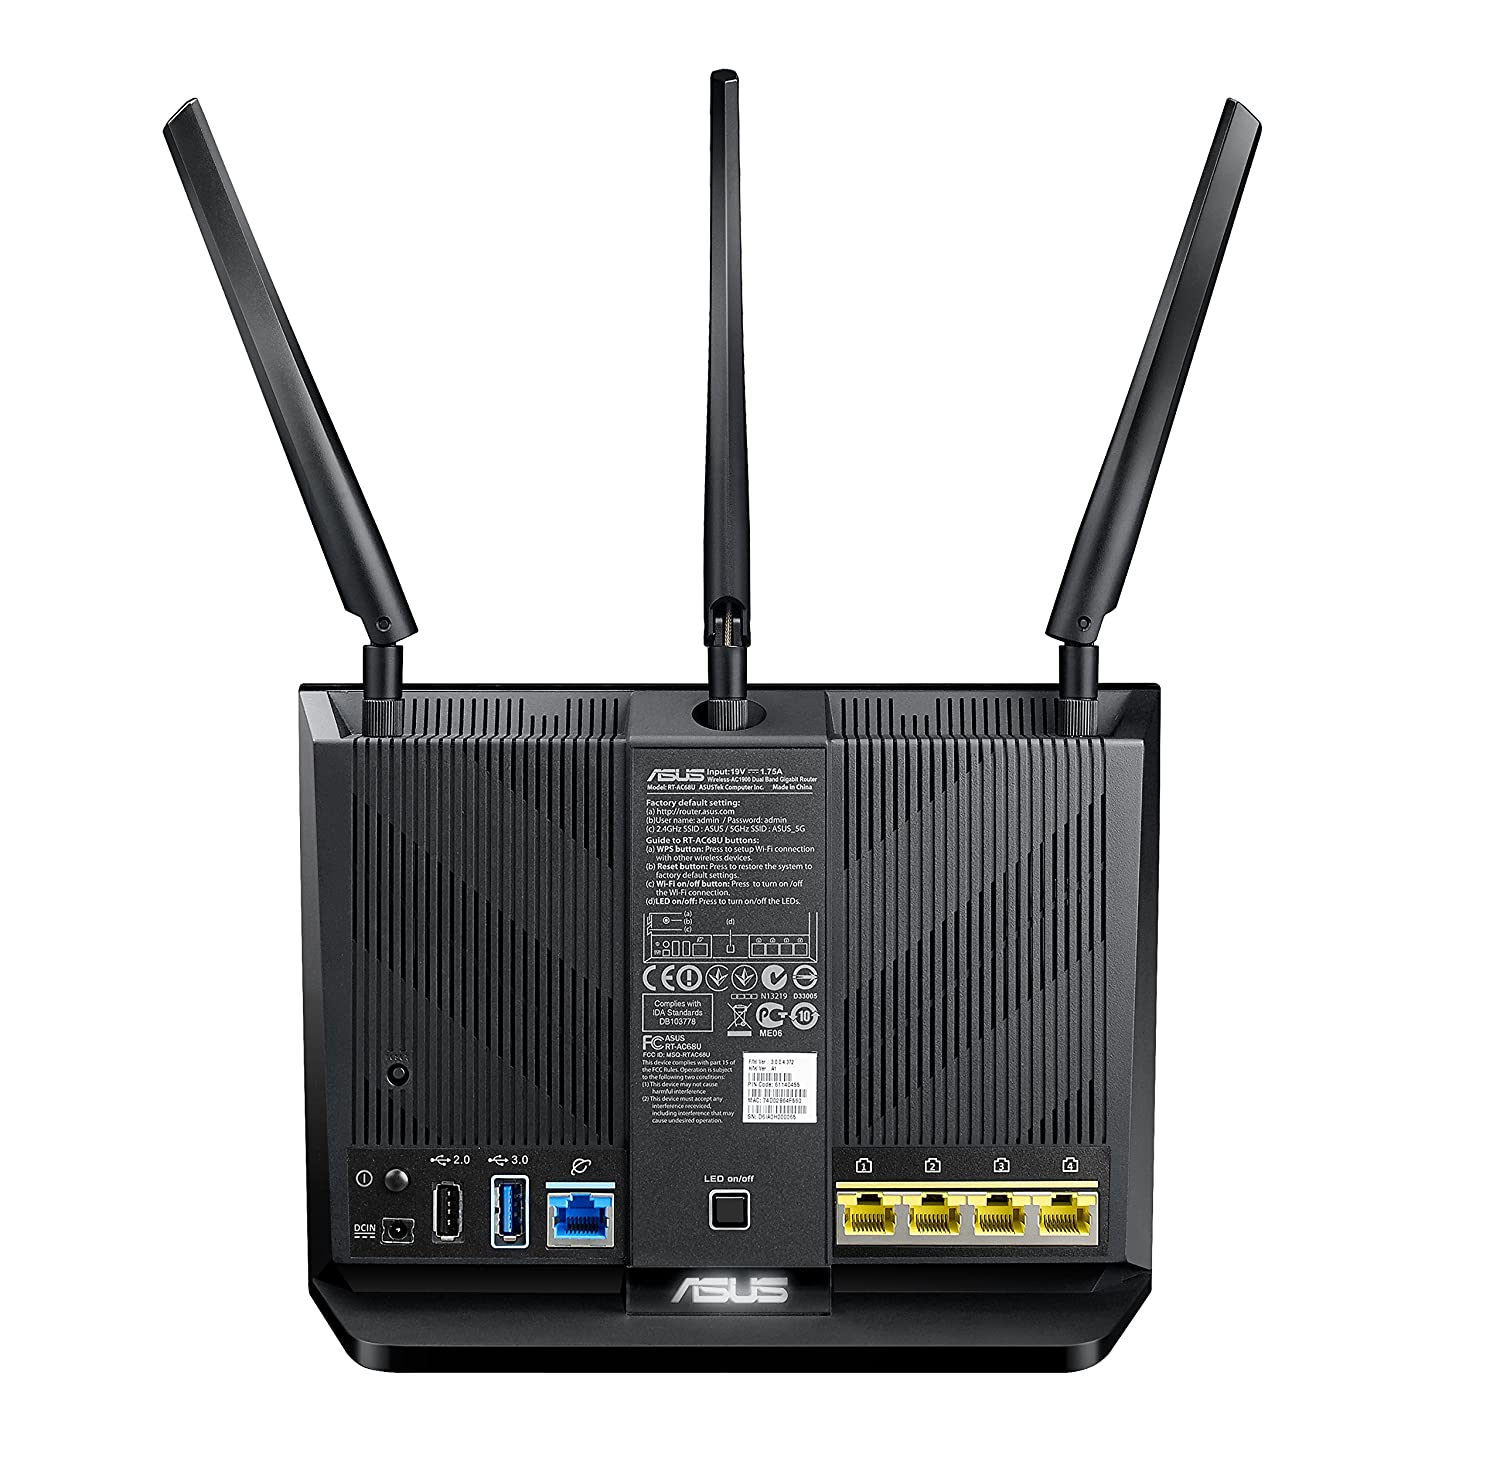 wireless home network router broadcom diagram wiring library amazon com asus whole home dual band aimesh router ac1900 for